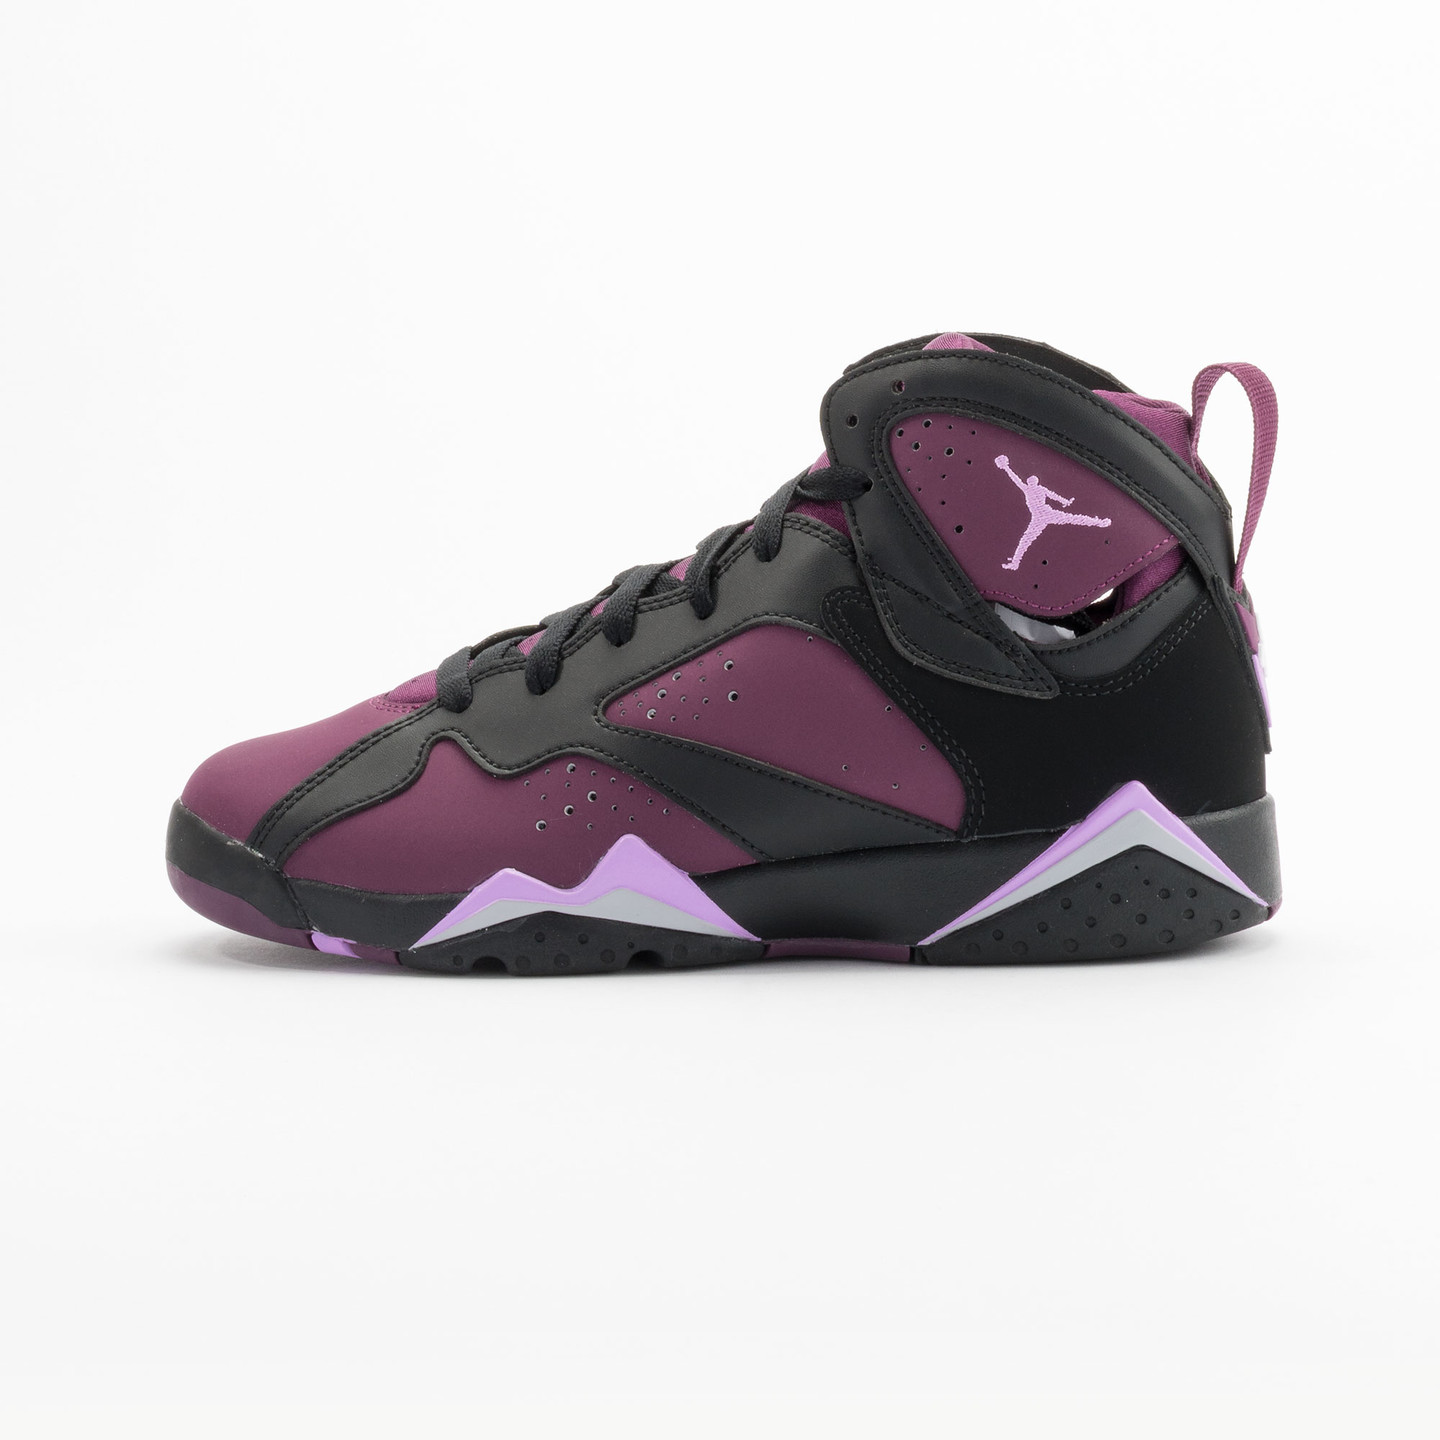 Jordan Air Jordan 7 Retro GG Mulberry / Fuchsia / Black 442960-009-36.5